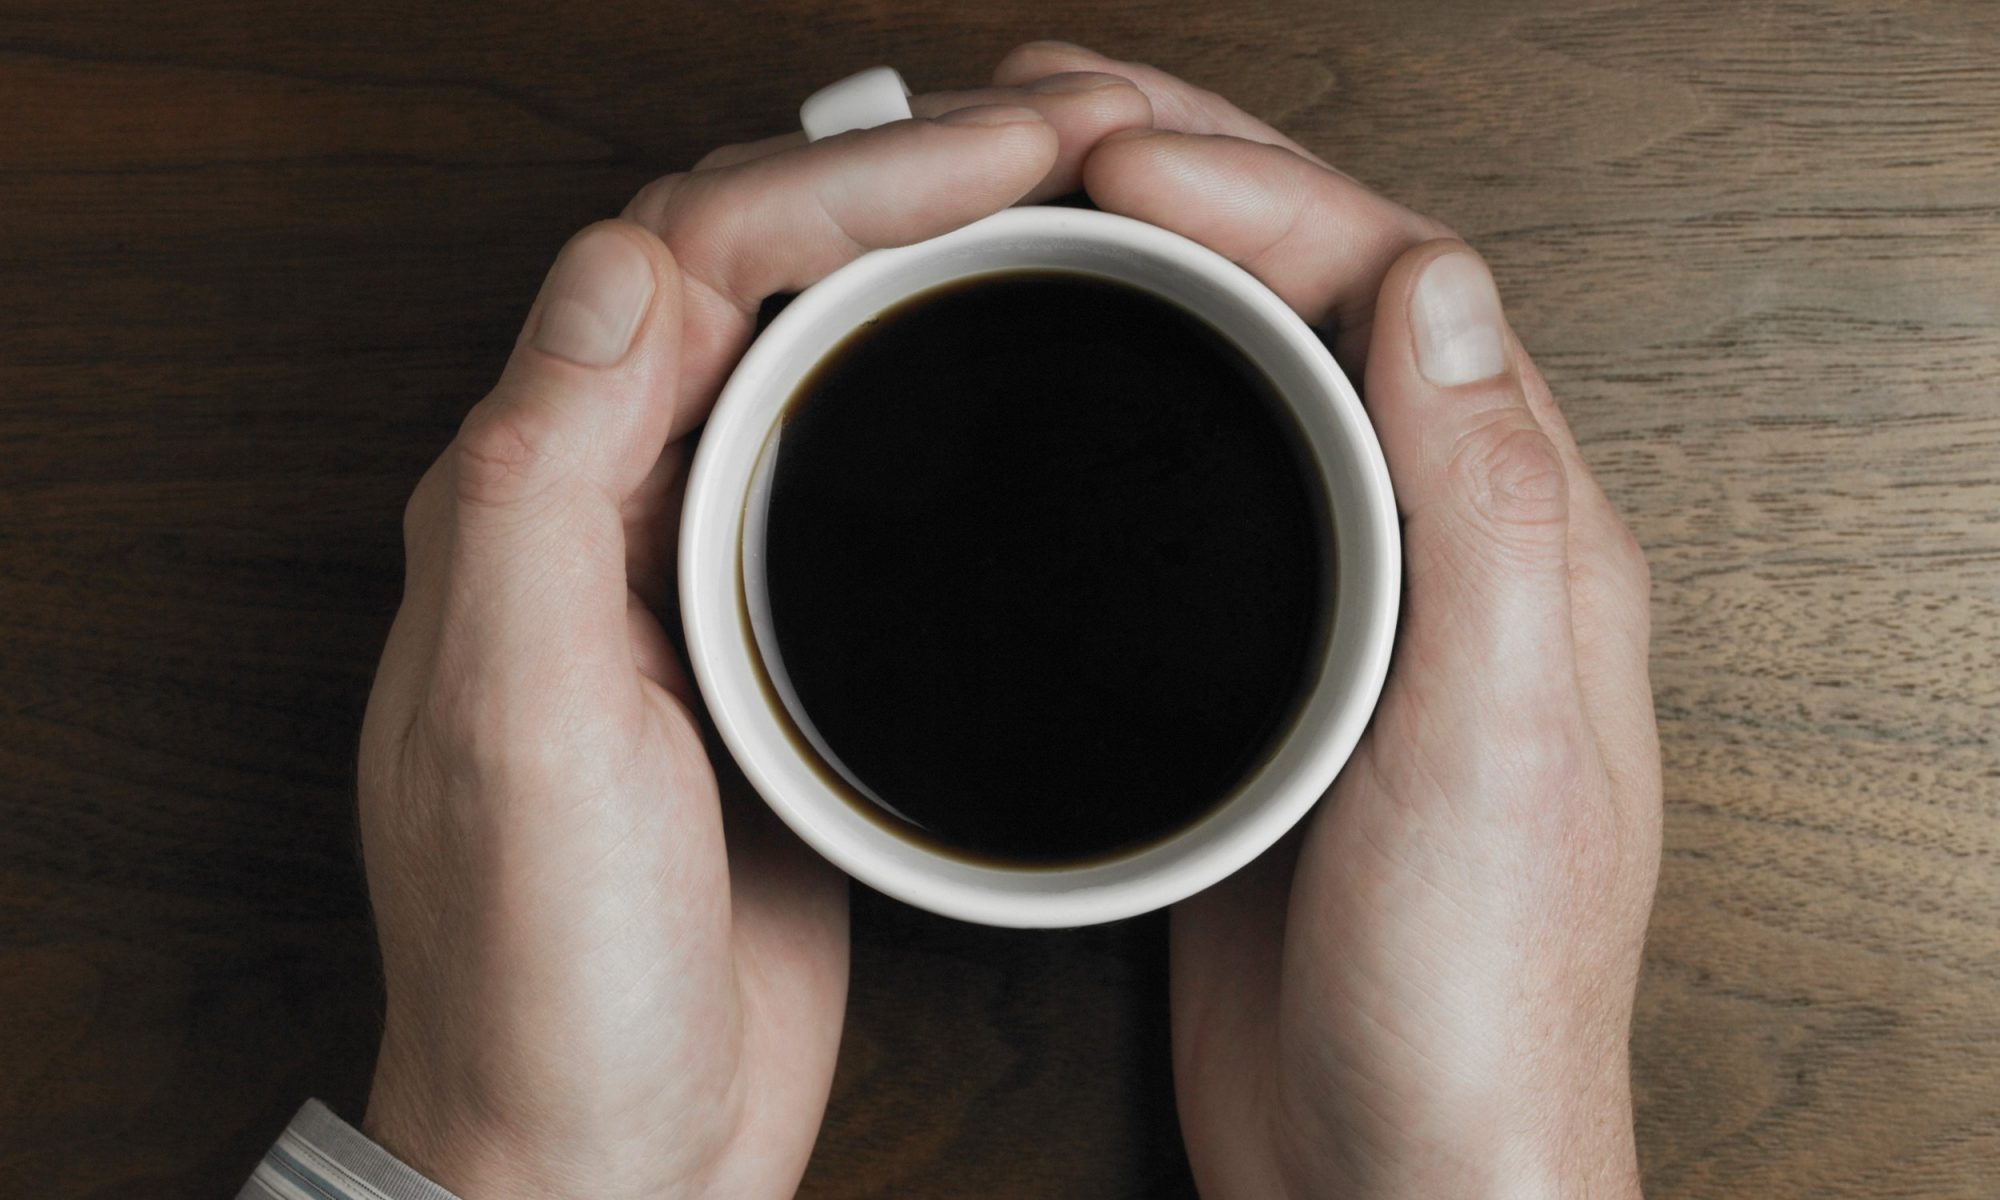 EC: Is $16 a Fair Price for a Cup of Coffee?